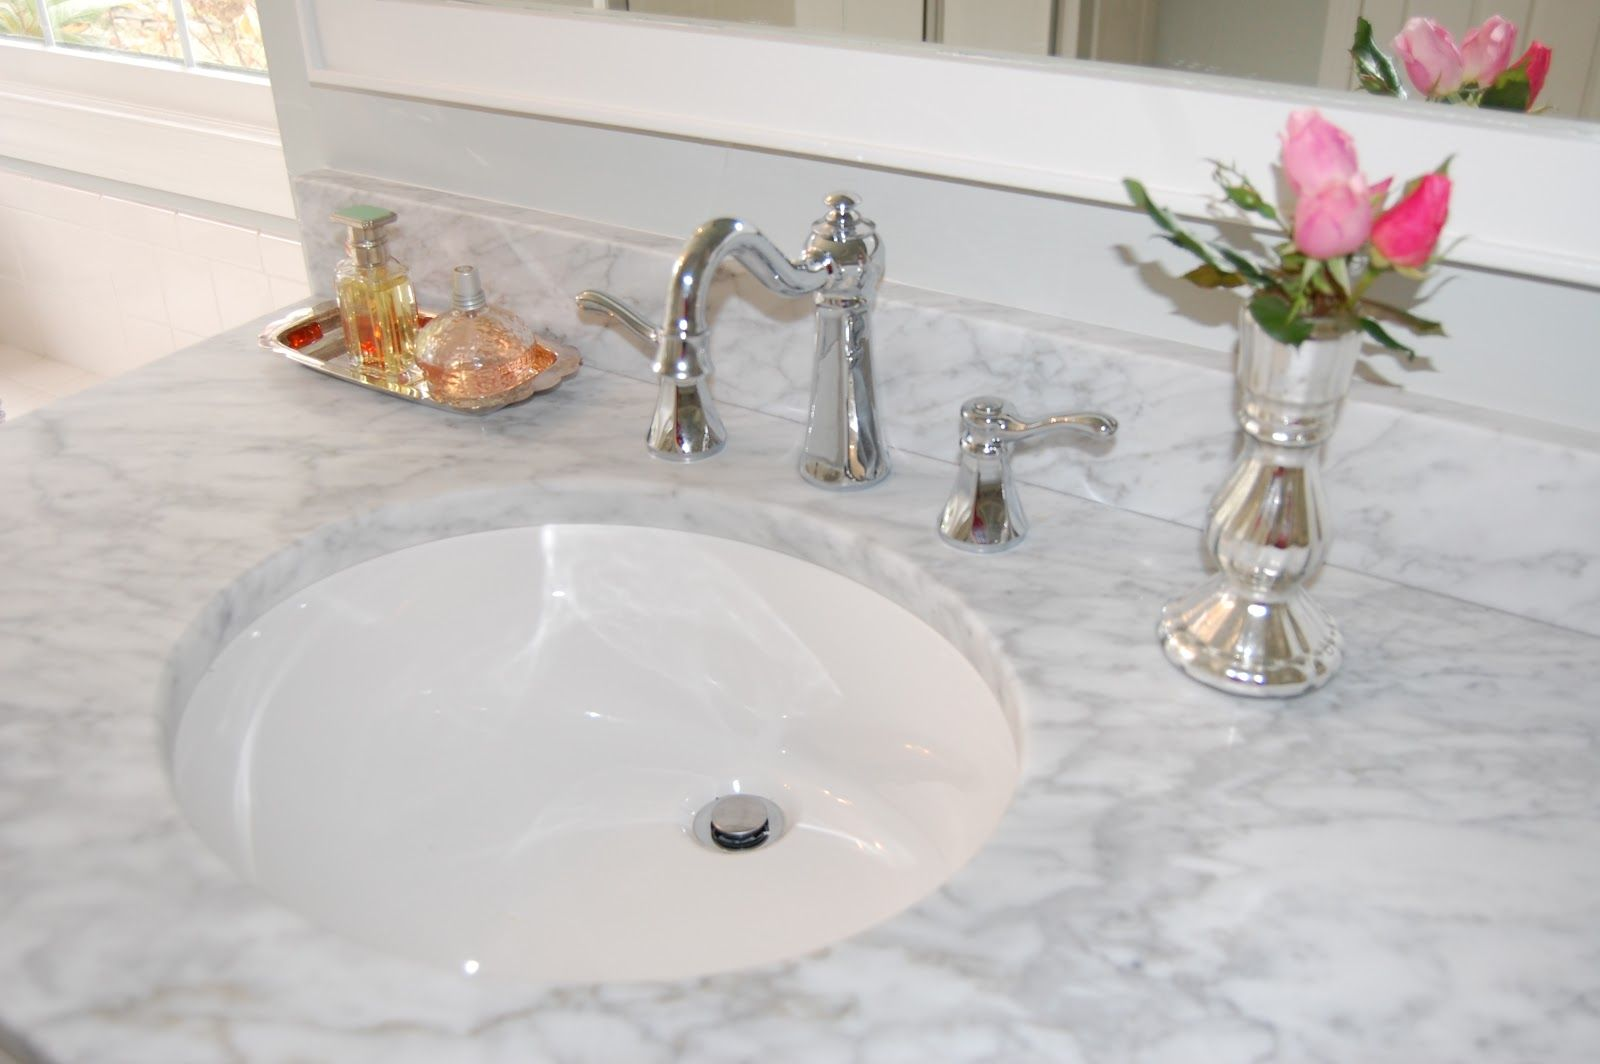 Bathroom Countertop Marble Bathroom Vanity Marble Bathroom Farmhouse Sink Bathroom Vanity